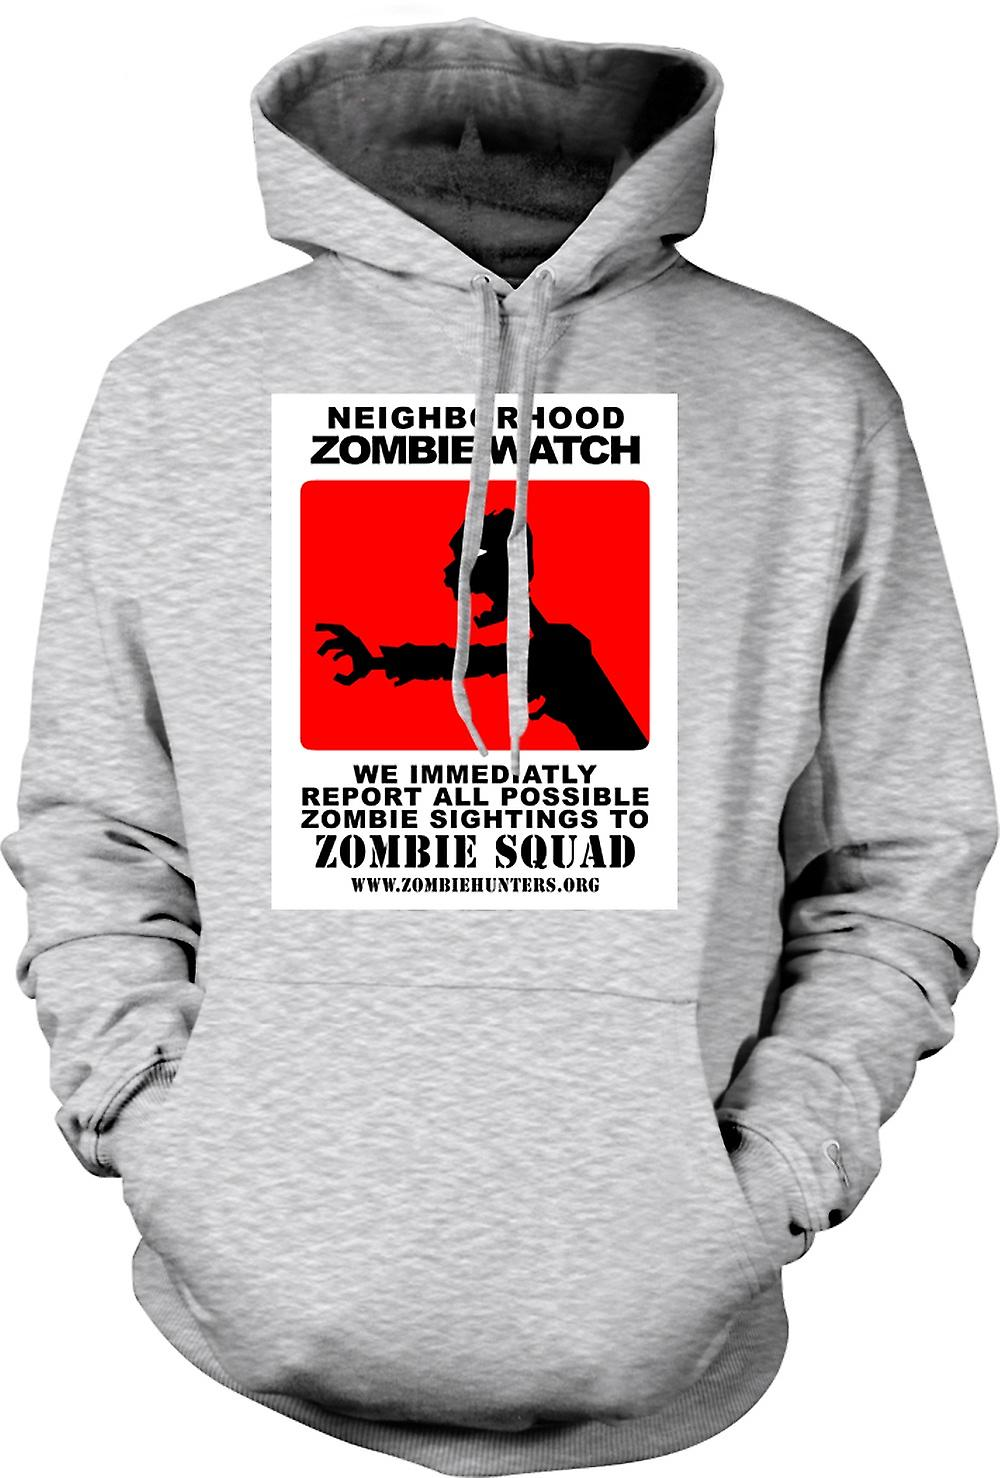 Mens Hoodie - Zombie Neighborhood Watch - Drôle